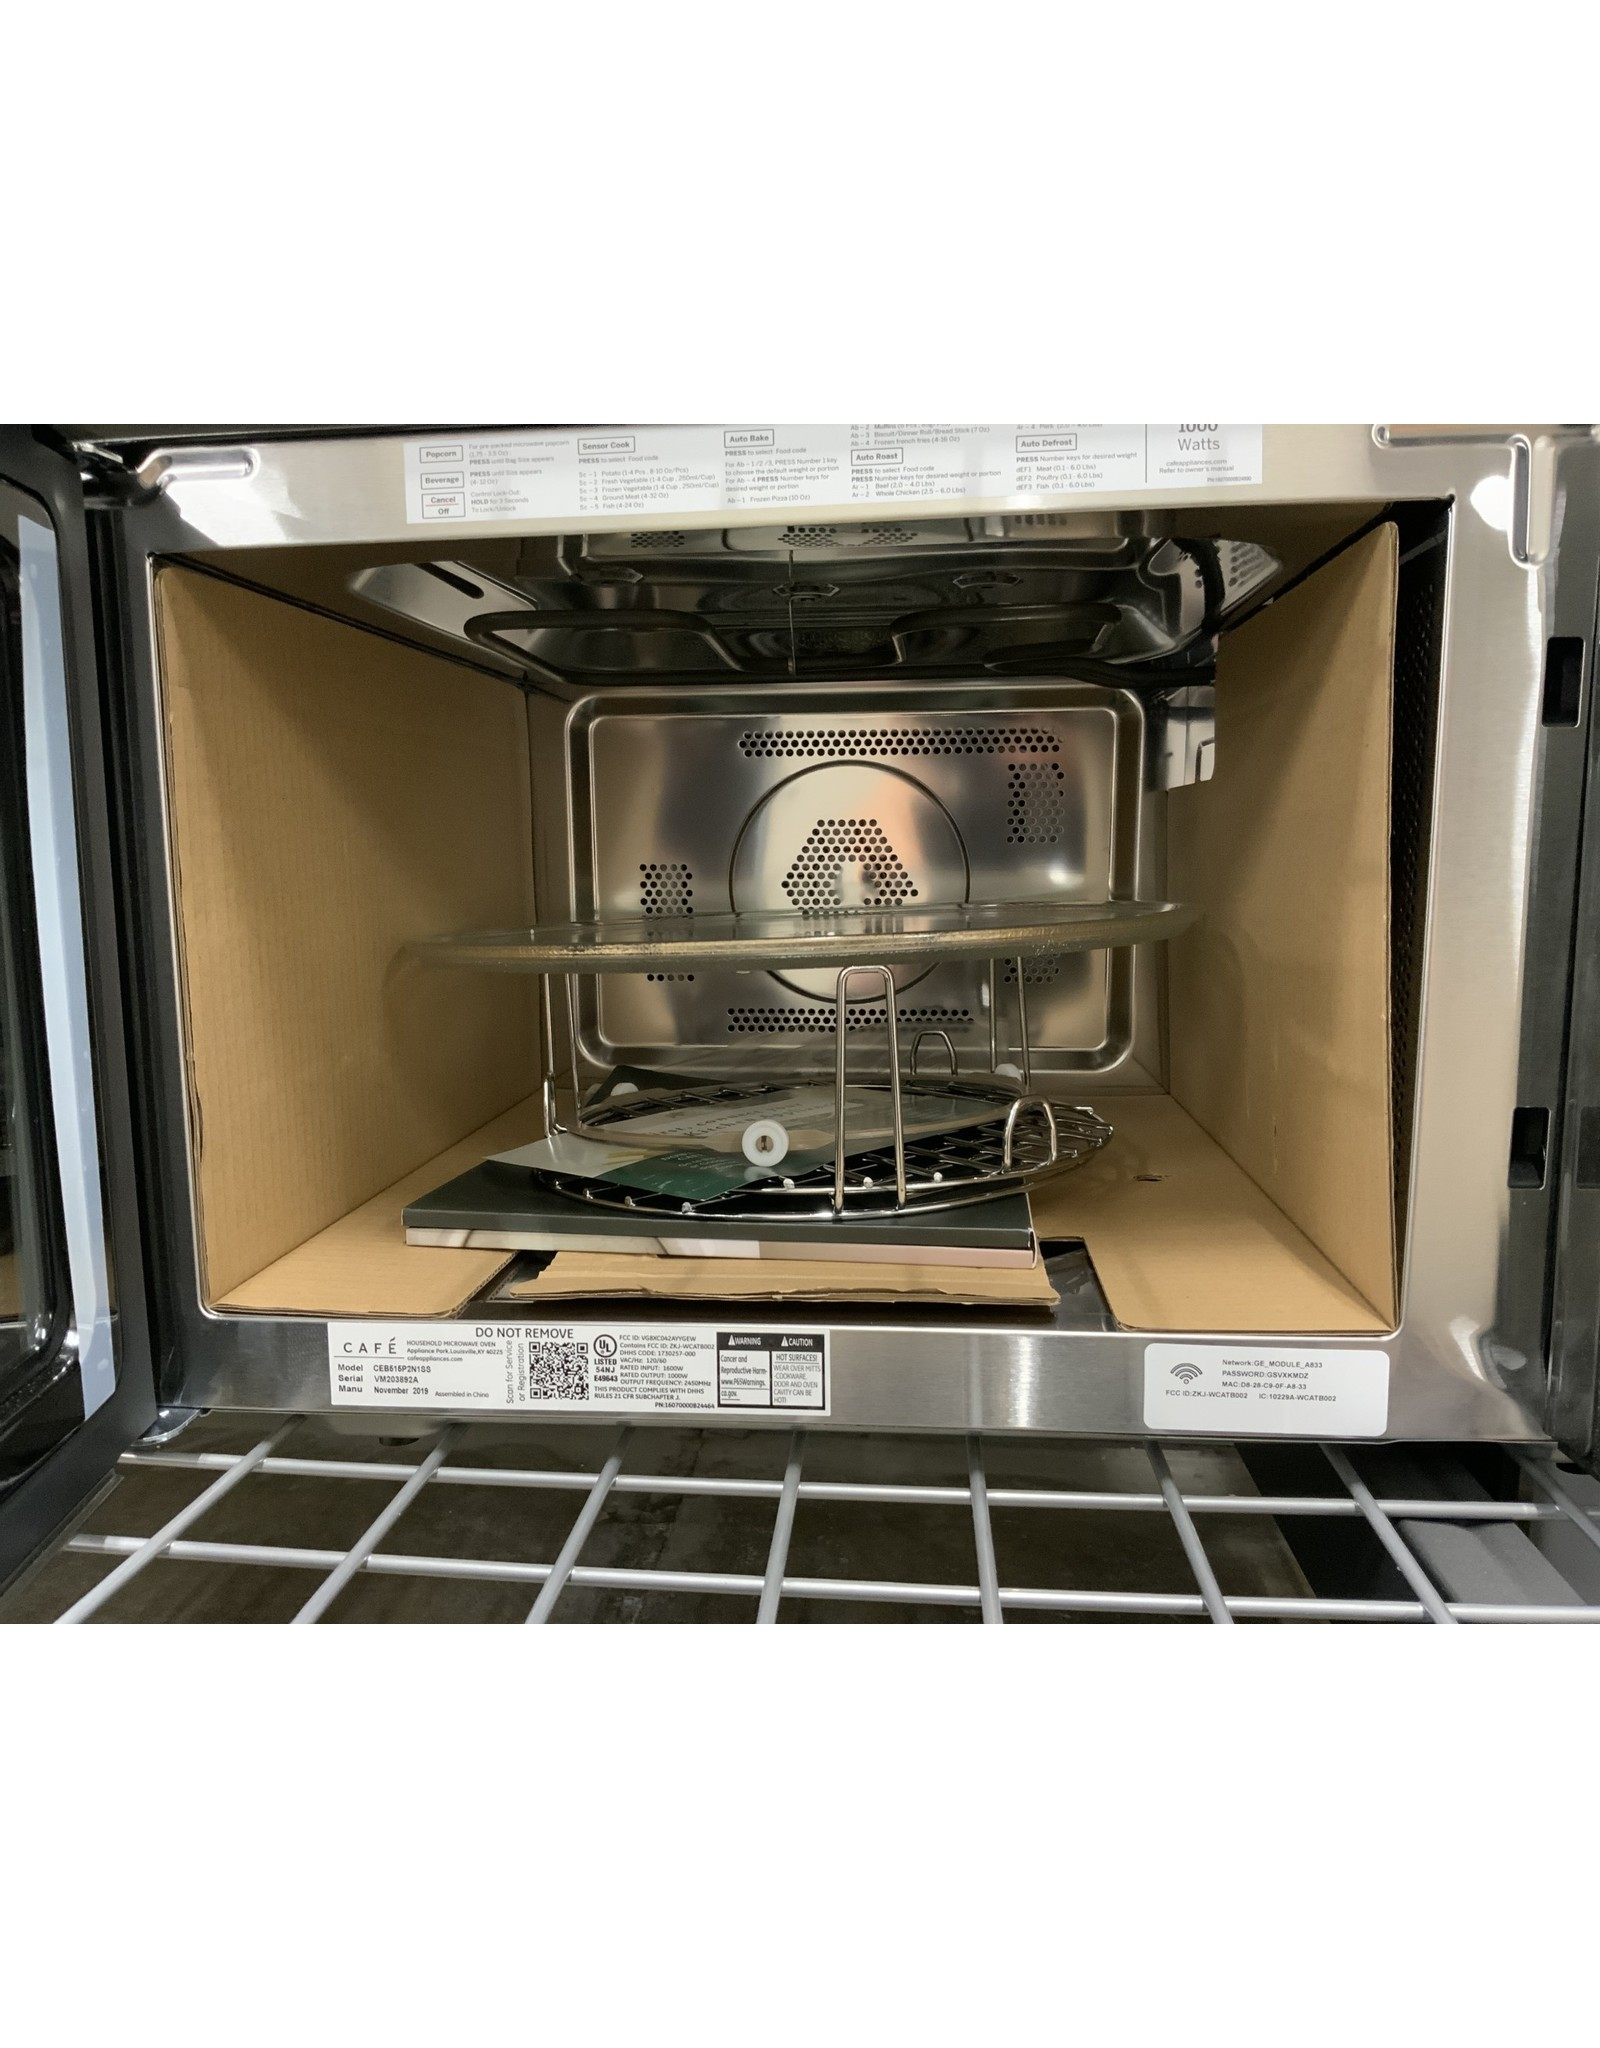 GE Cafe GE Cafe 1.5 Cu. Ft. Smart Countertop Convection/Microwave Oven